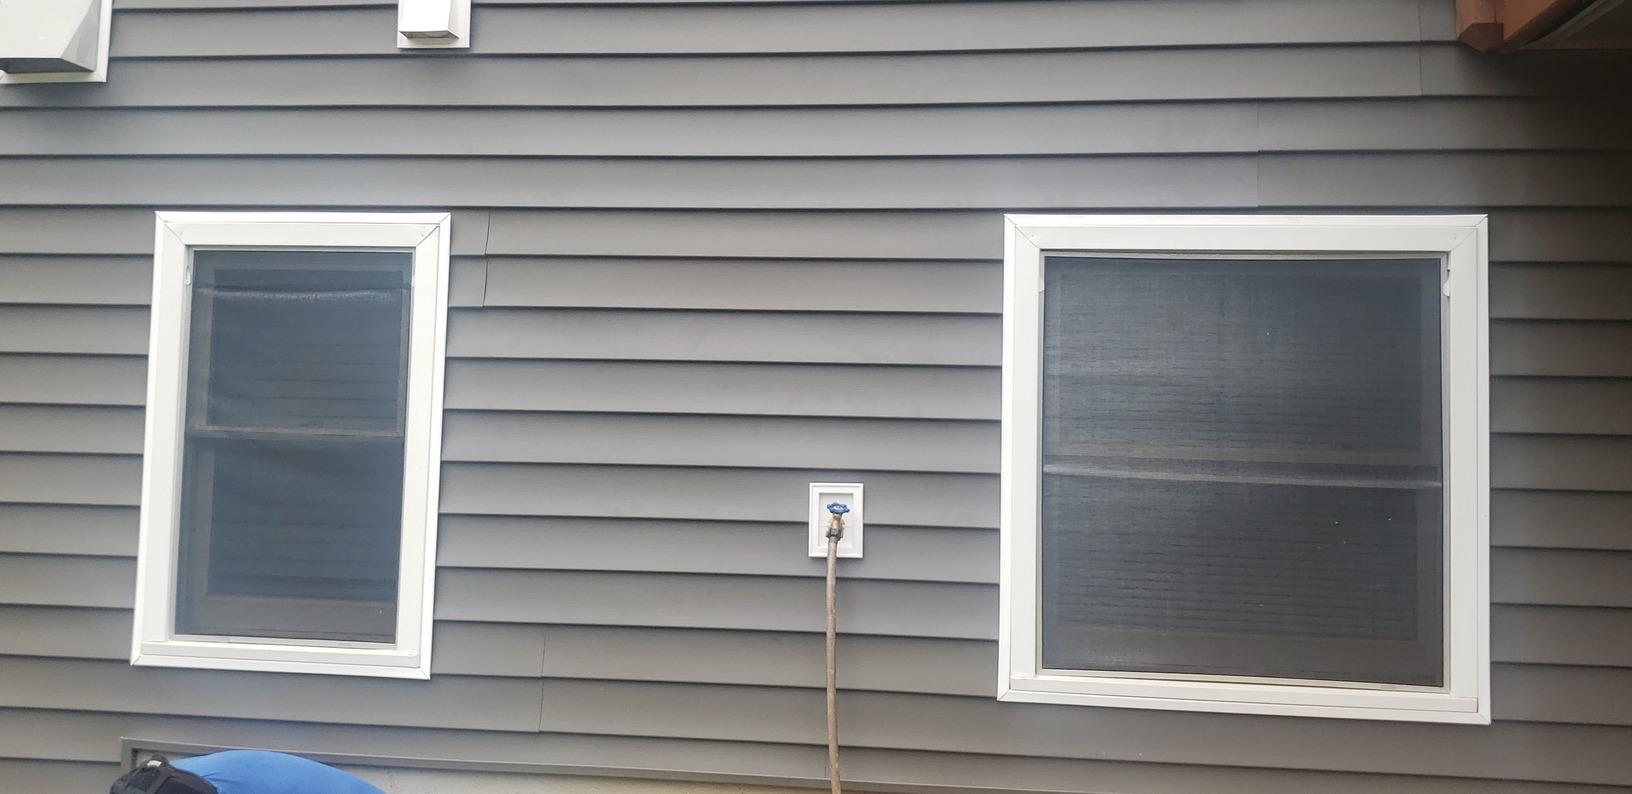 Siding repair in Winston, GA - After Photo